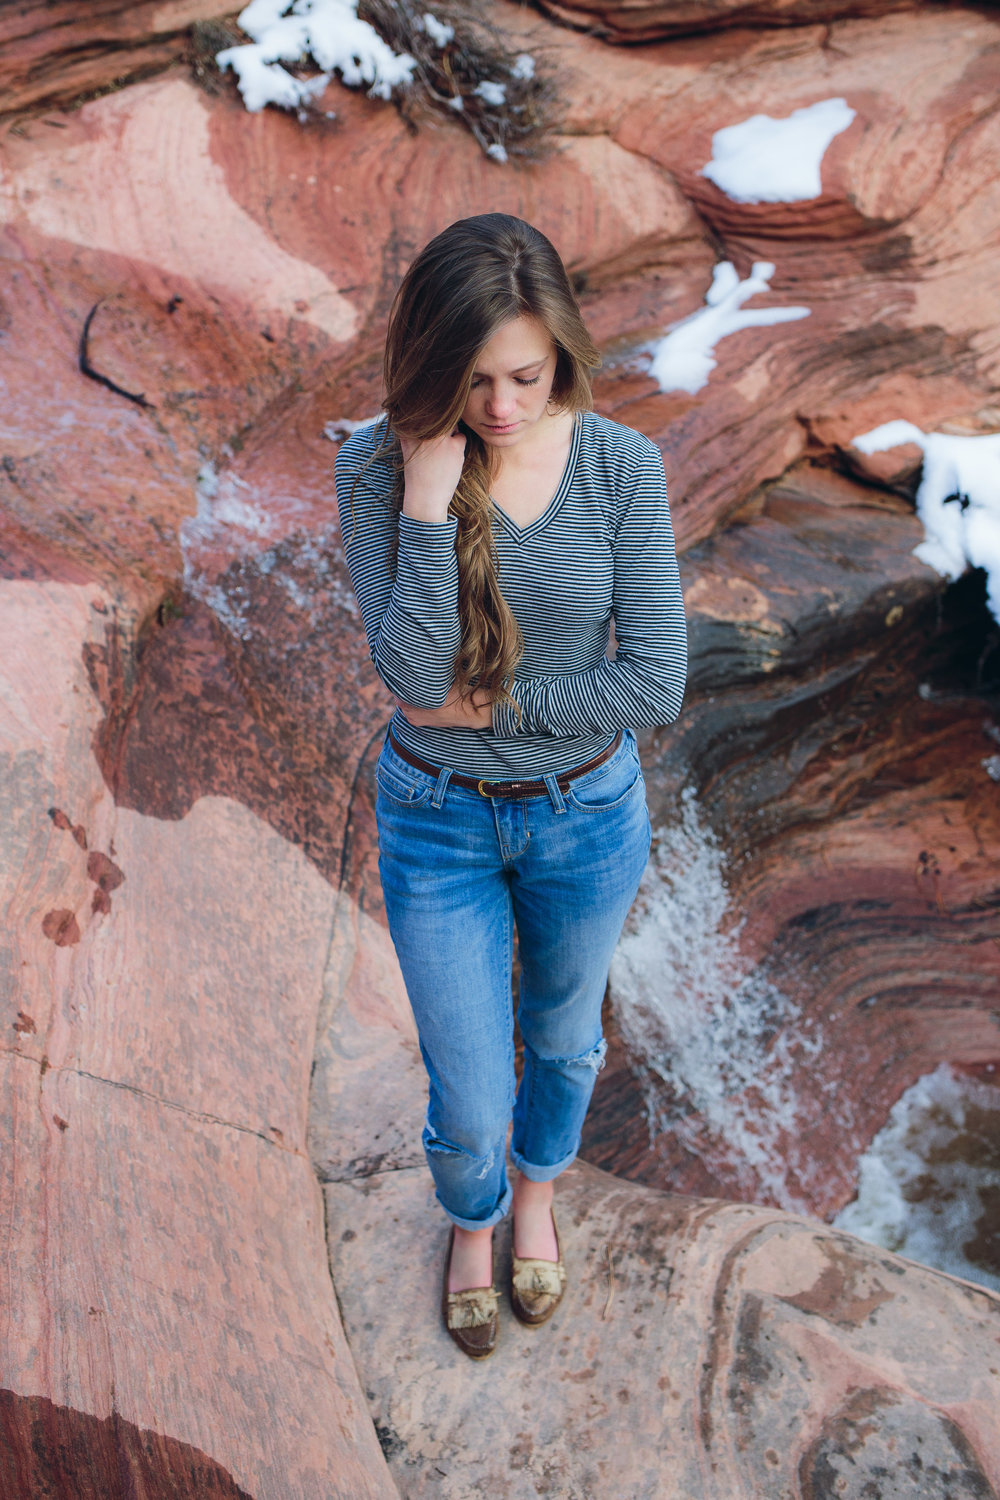 Beautiful girl in Zion red rock water fall